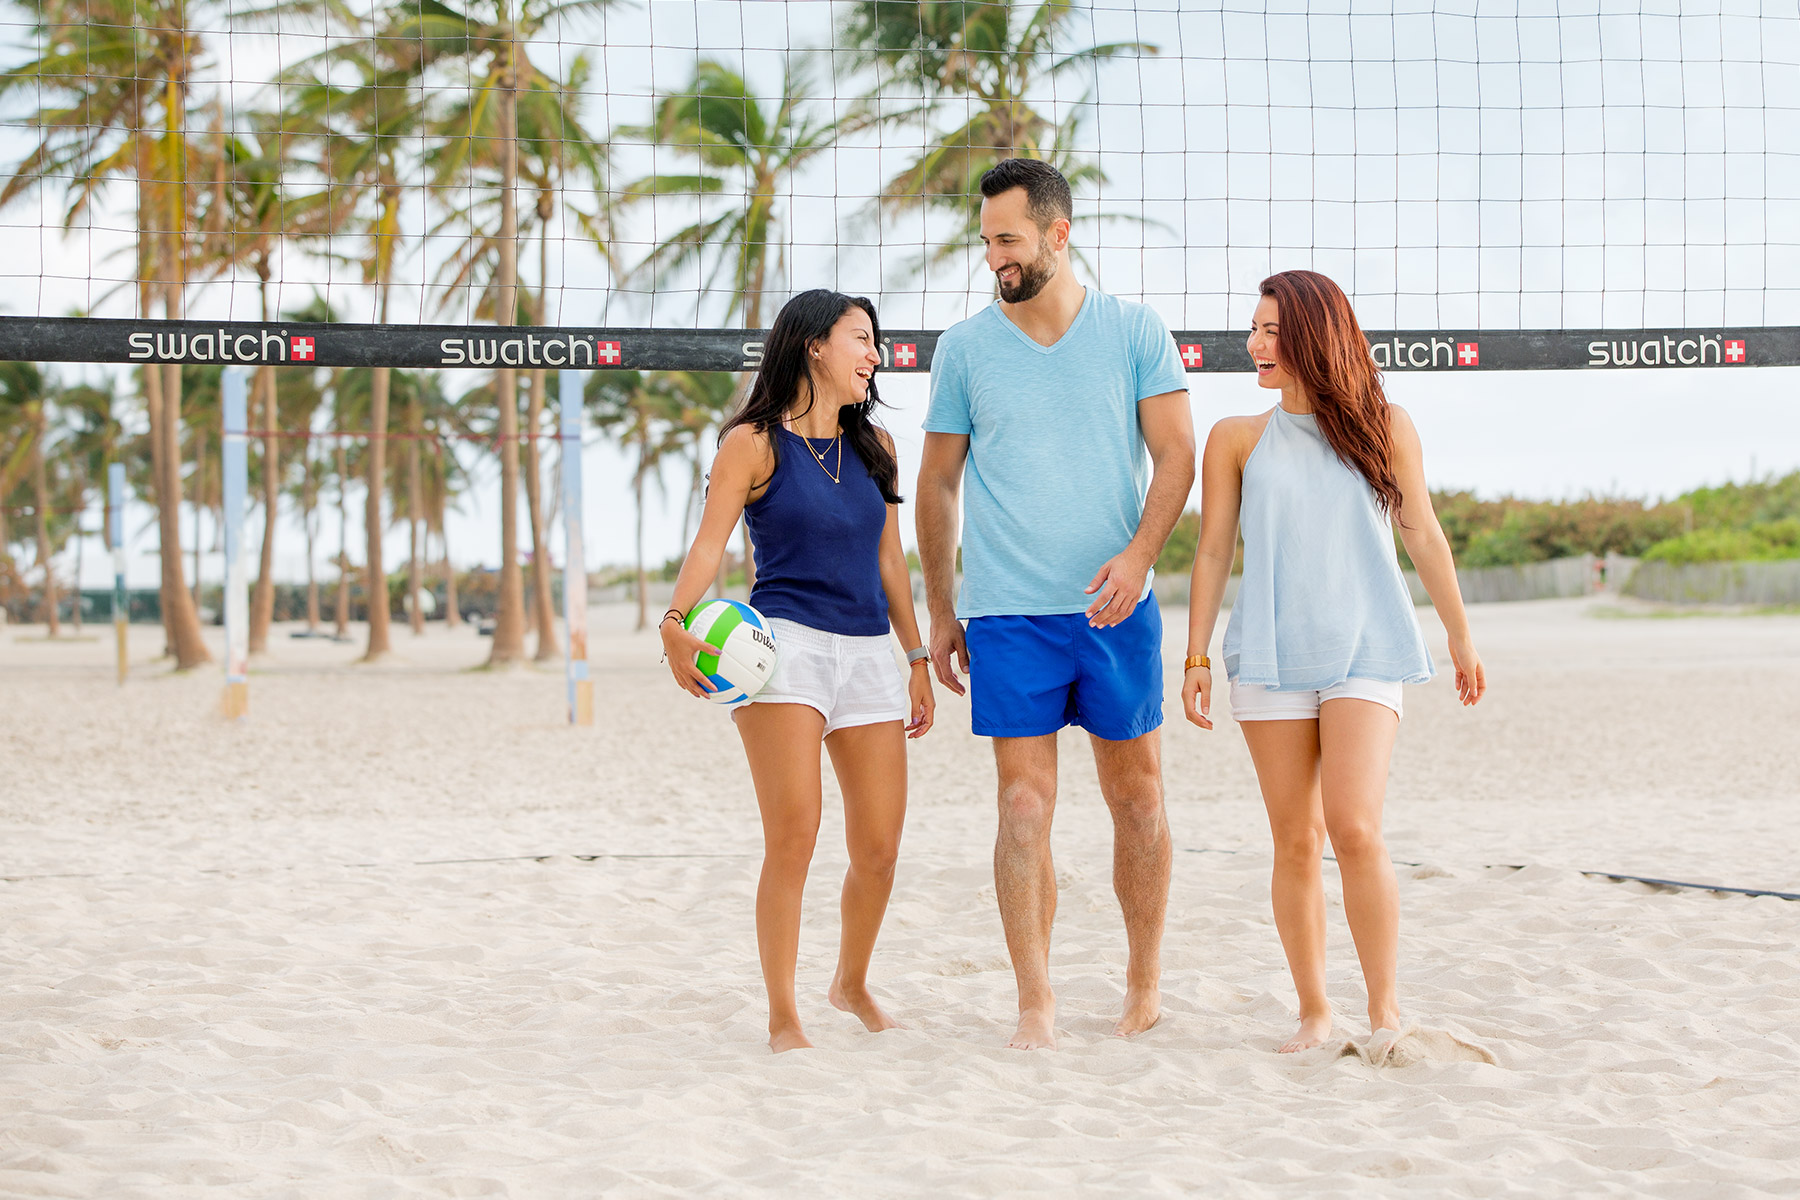 Miami_lifestyle_photographer_david_gonzalez_fun_friends_volleyball_Miami_beach_01.jpg